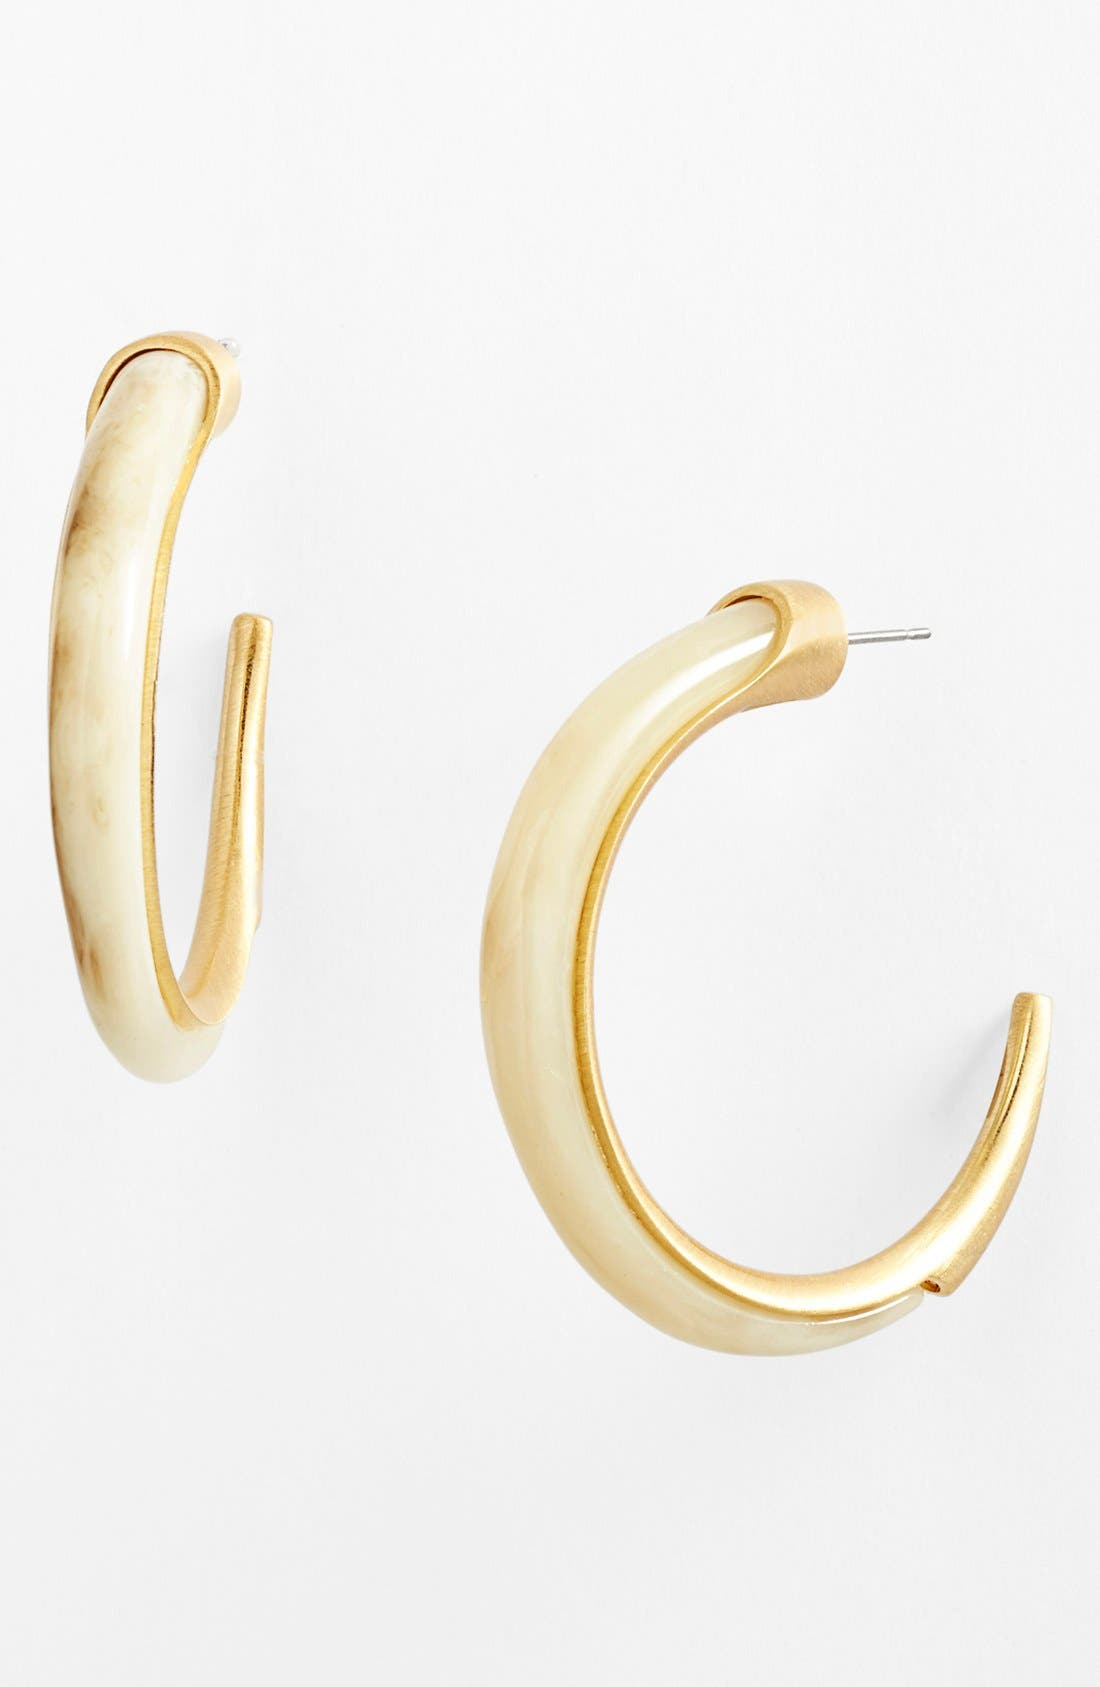 Main Image - Vince Camuto 'Thorns & Horns' Hoop Earrings